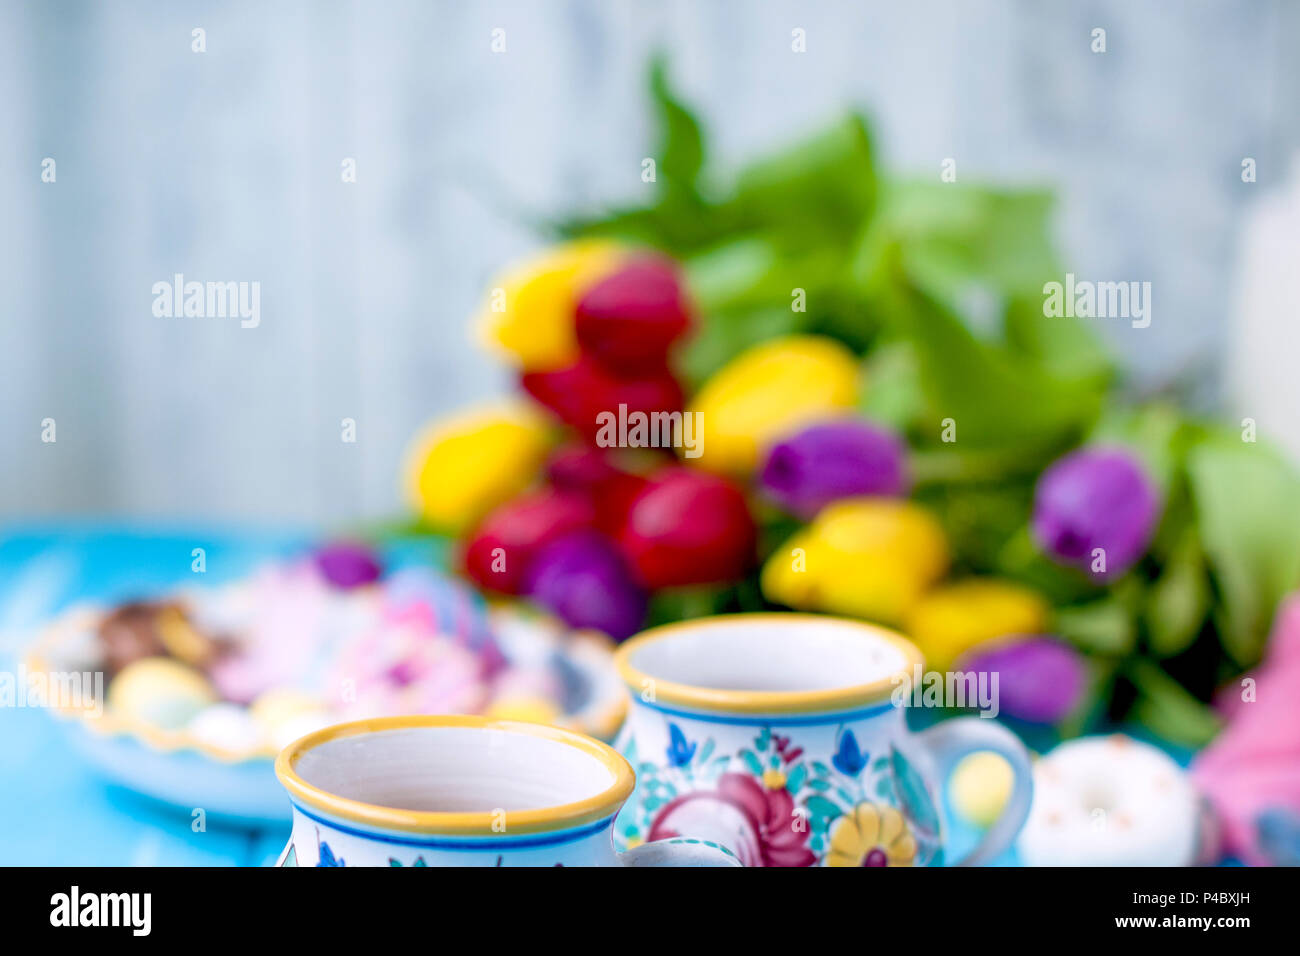 Easter sweets for the holiday. Spring. Bright colors on coffee mugs. A bouquet of fresh tulips. Free space for text . - Stock Image